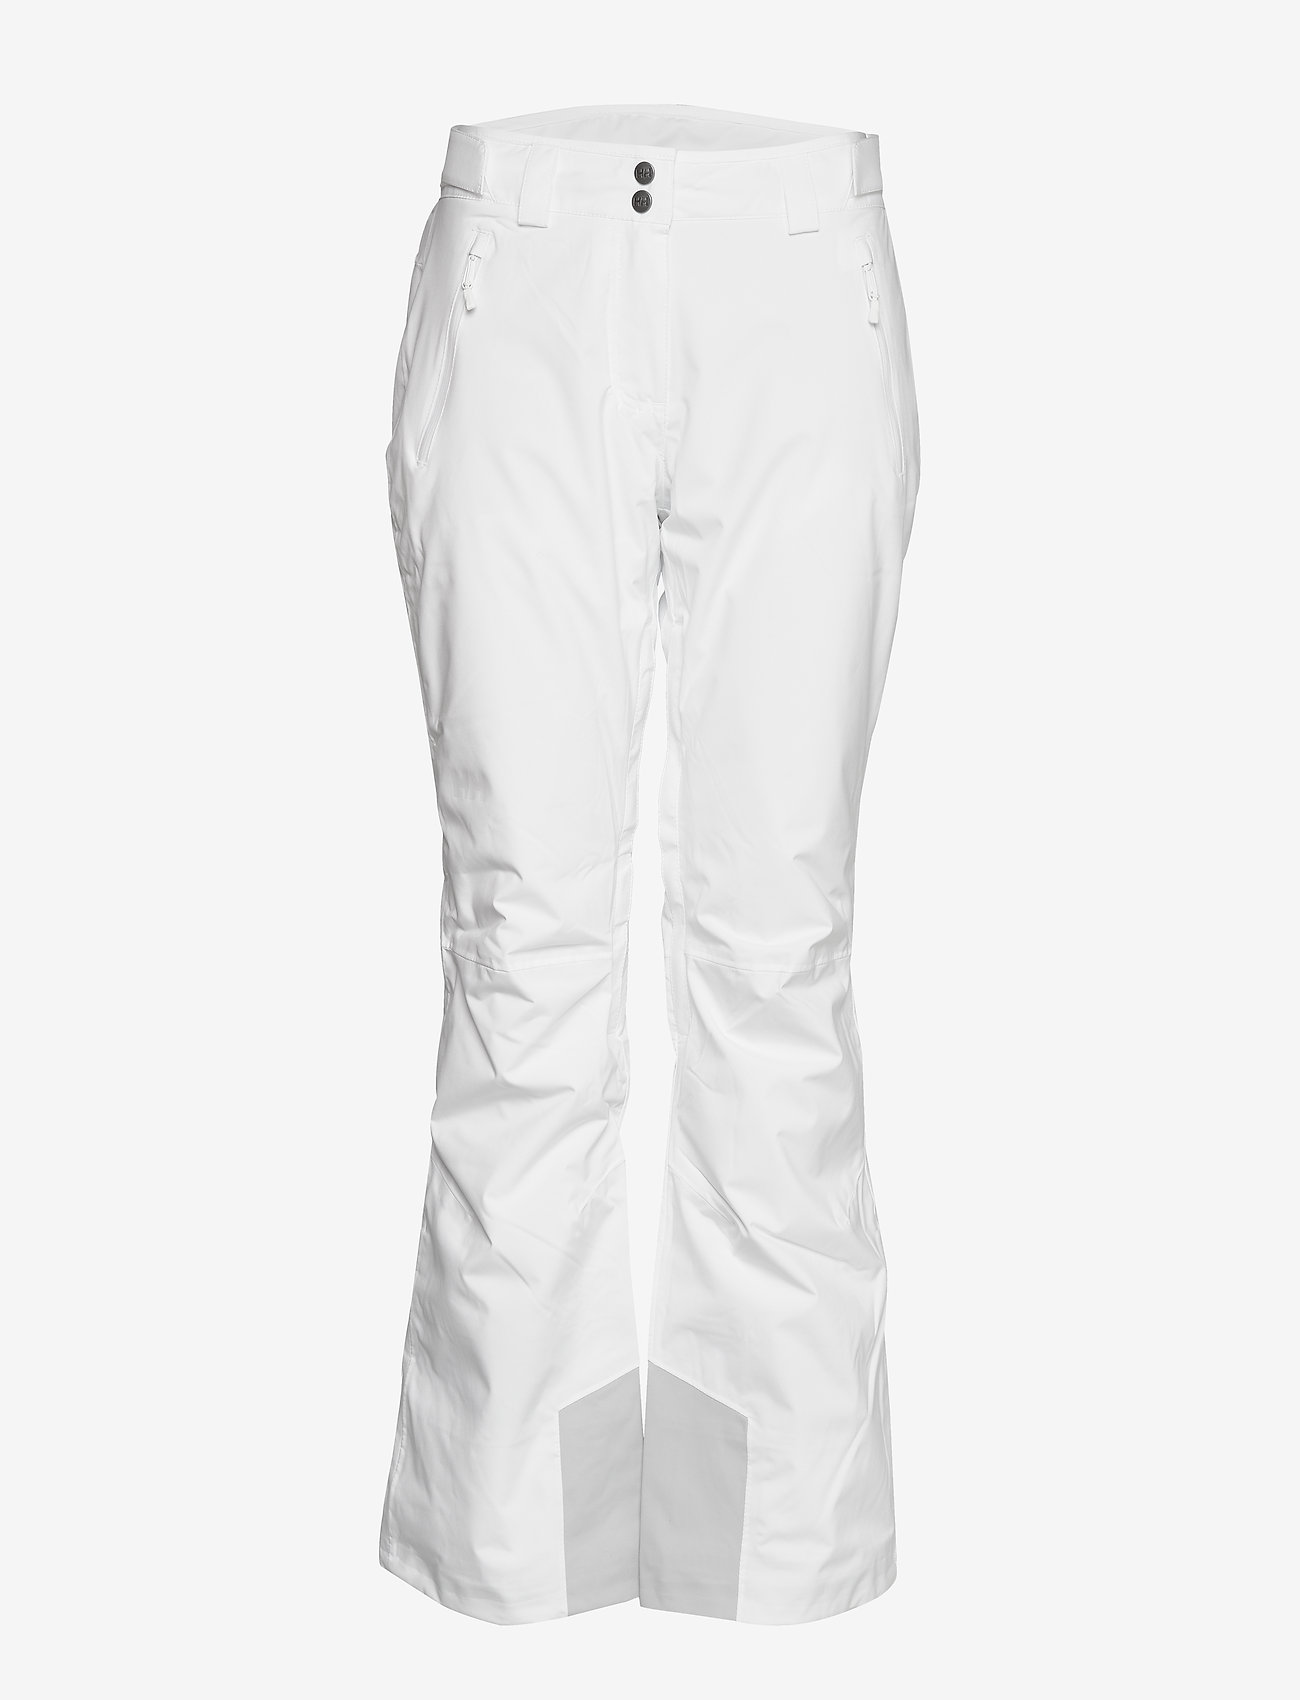 Helly Hansen - W LEGENDARY INSULATED PANT - insulated pants - white - 1